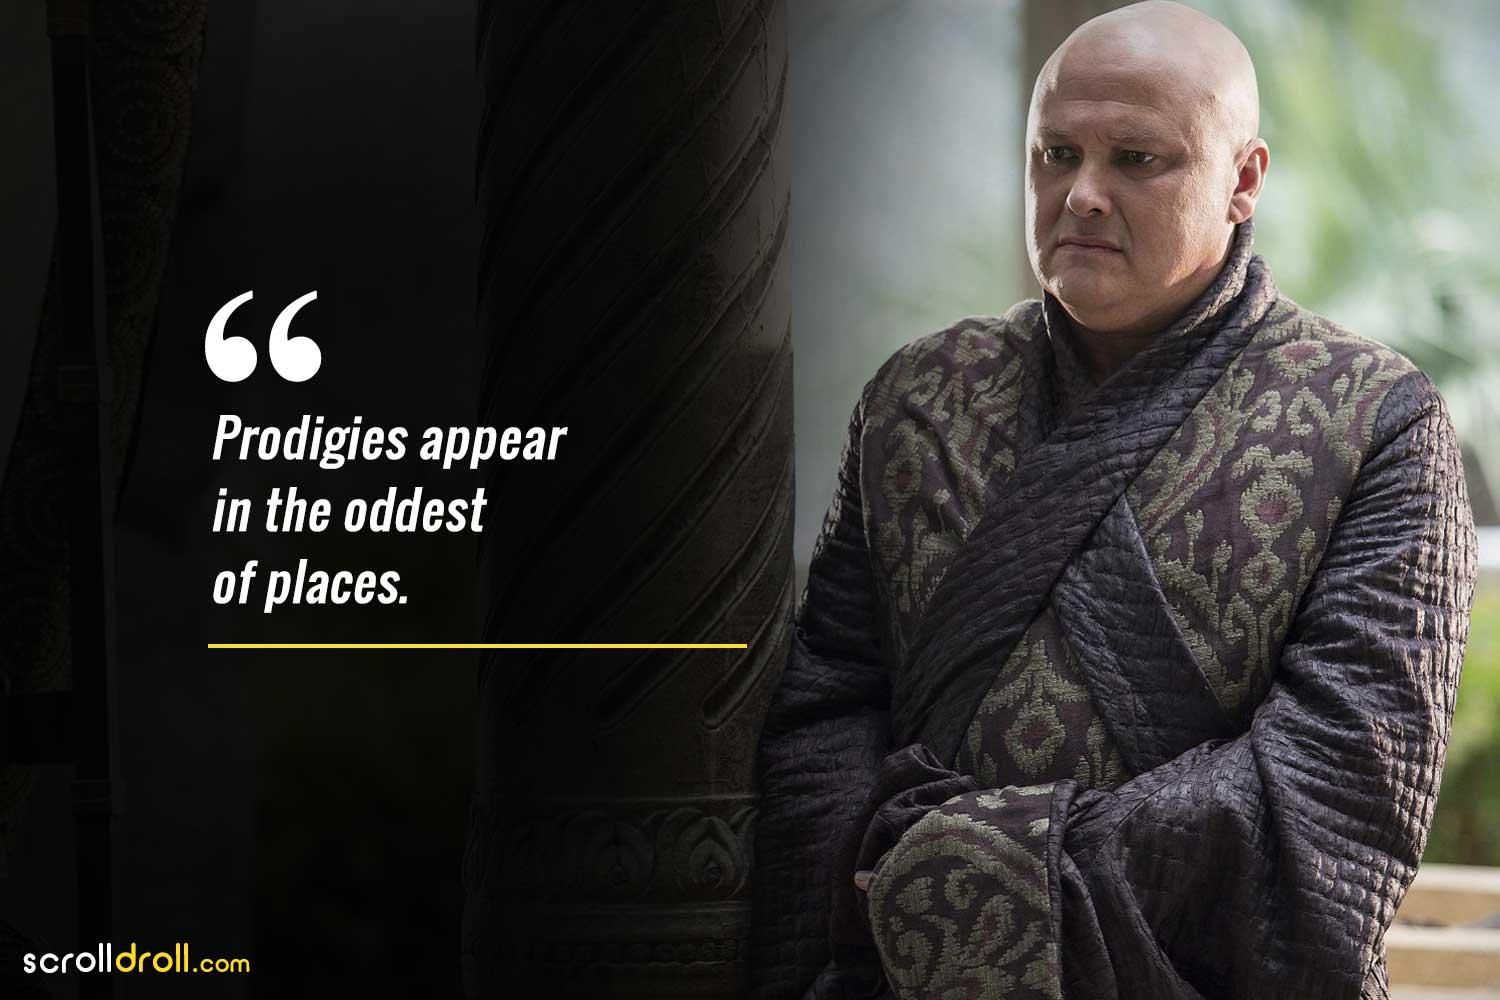 prodigies appear in the oddest of places-lord varys quotes